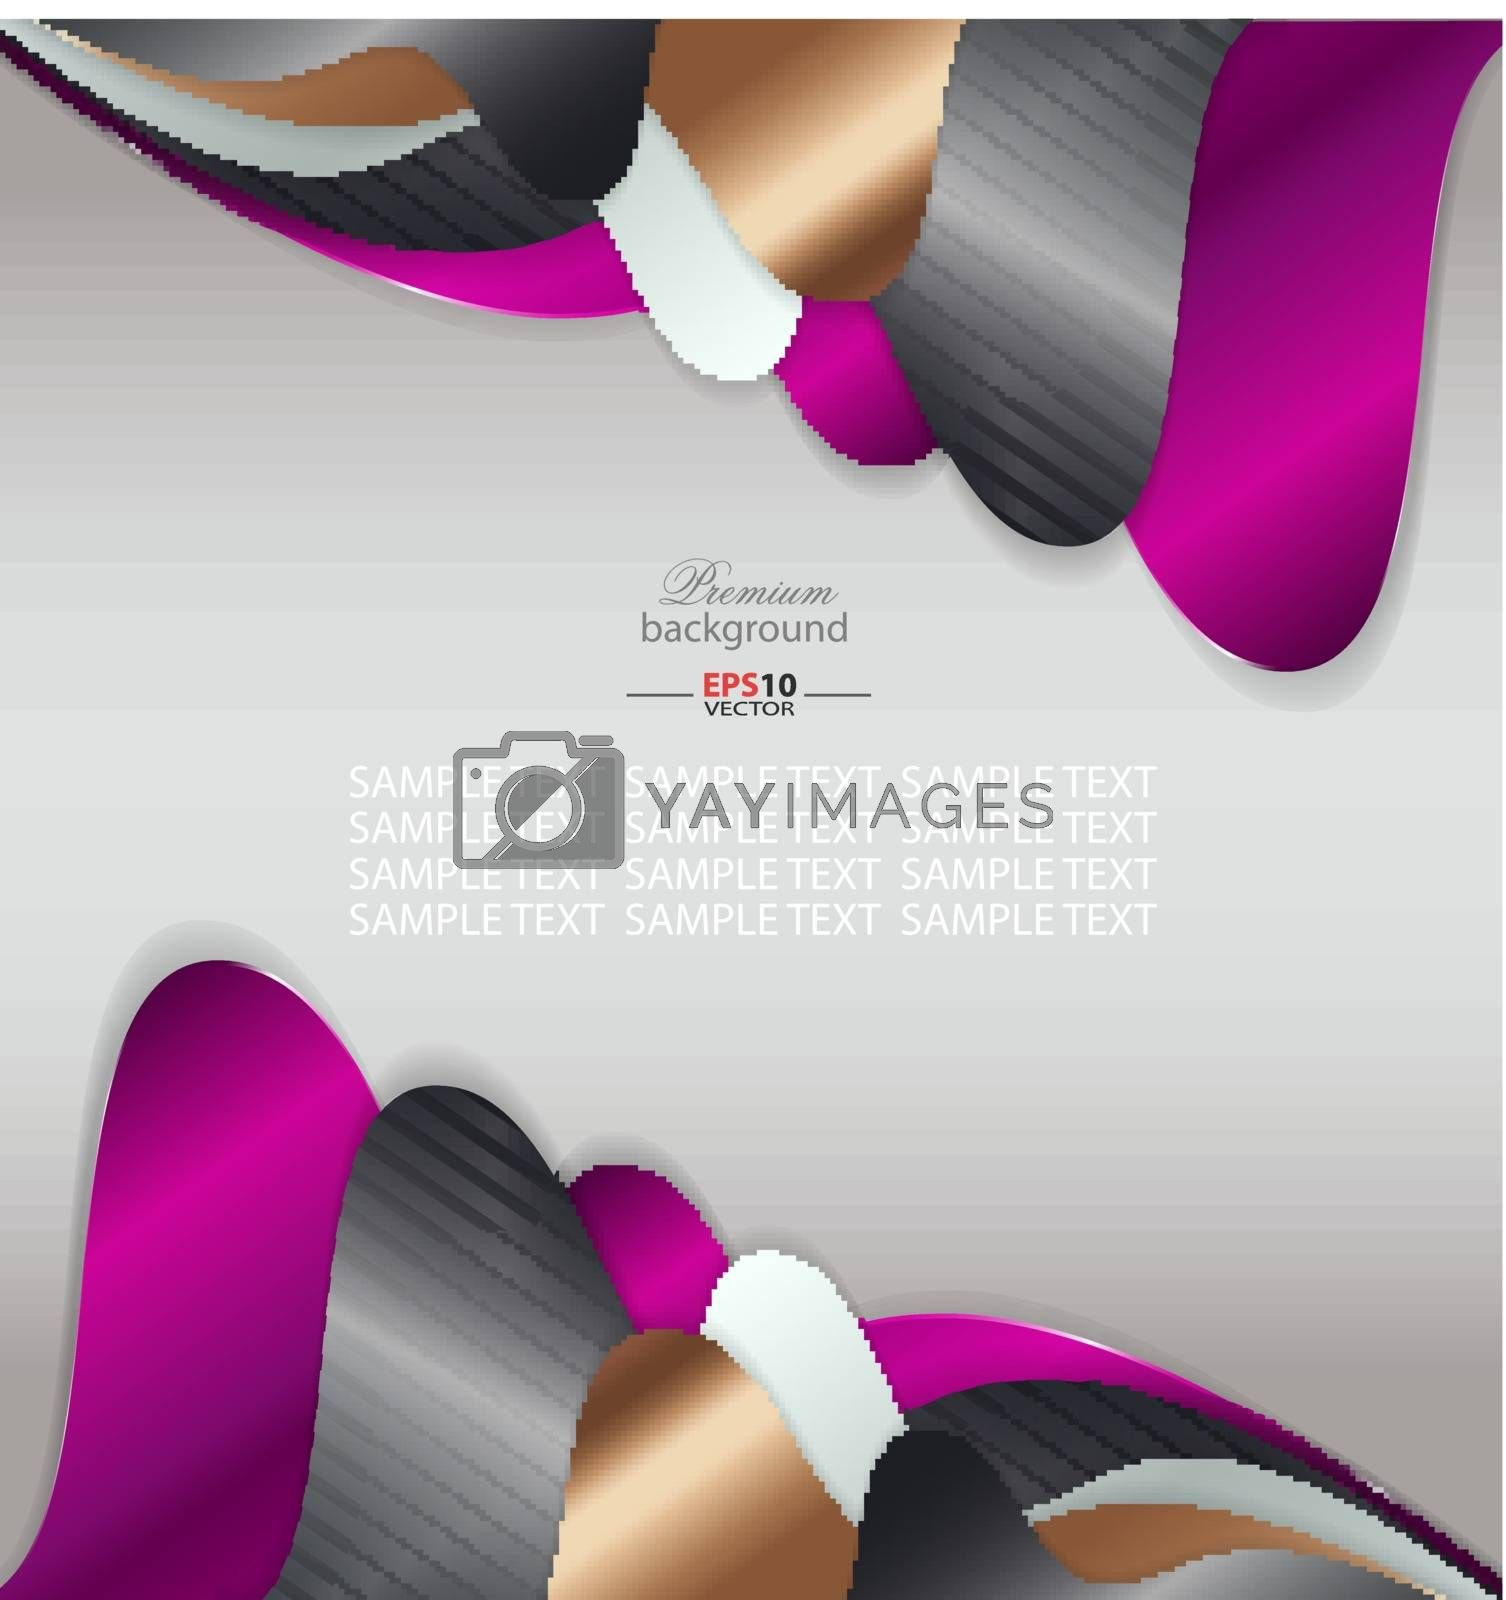 Abstract background with metal ornament for creative design